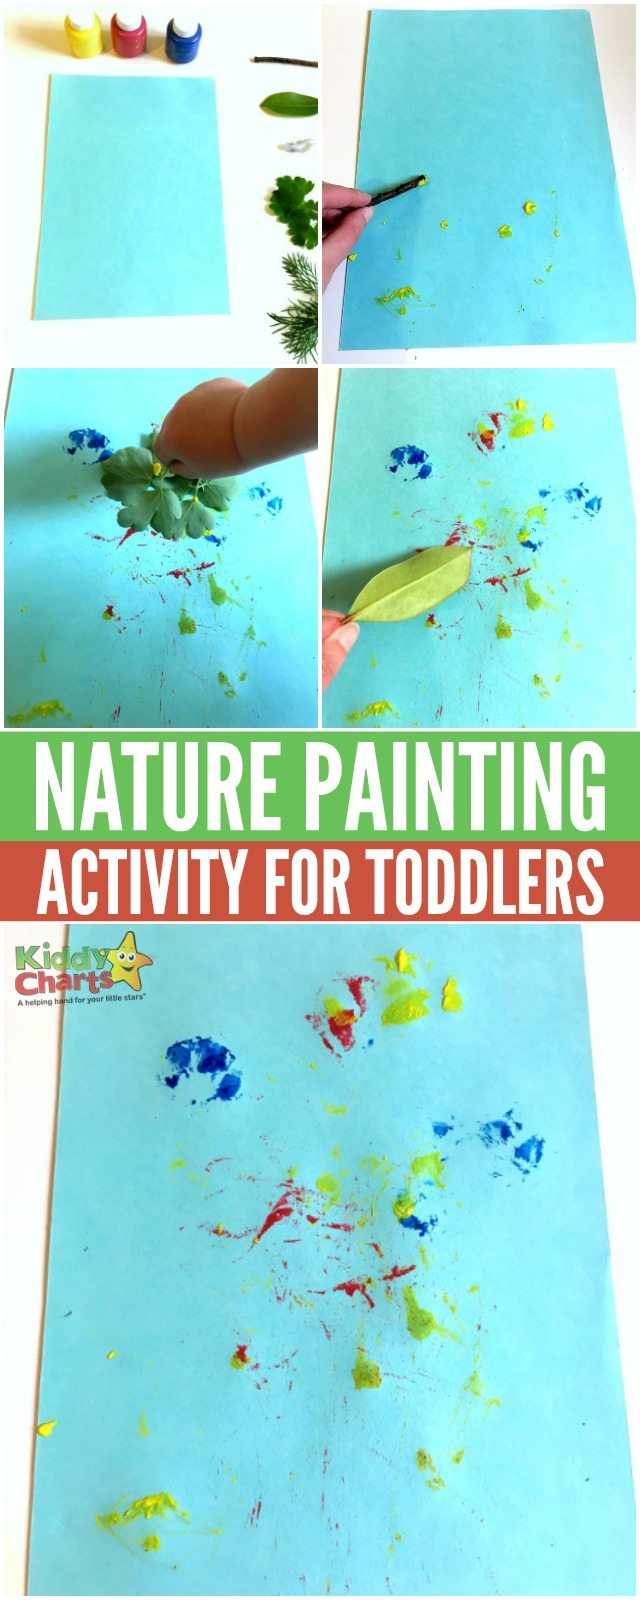 Nature Painting For Toddlers. Super fun activity for toddlers to make. #activityfortoddlers #paintingwithnaturematerials #activityforkids